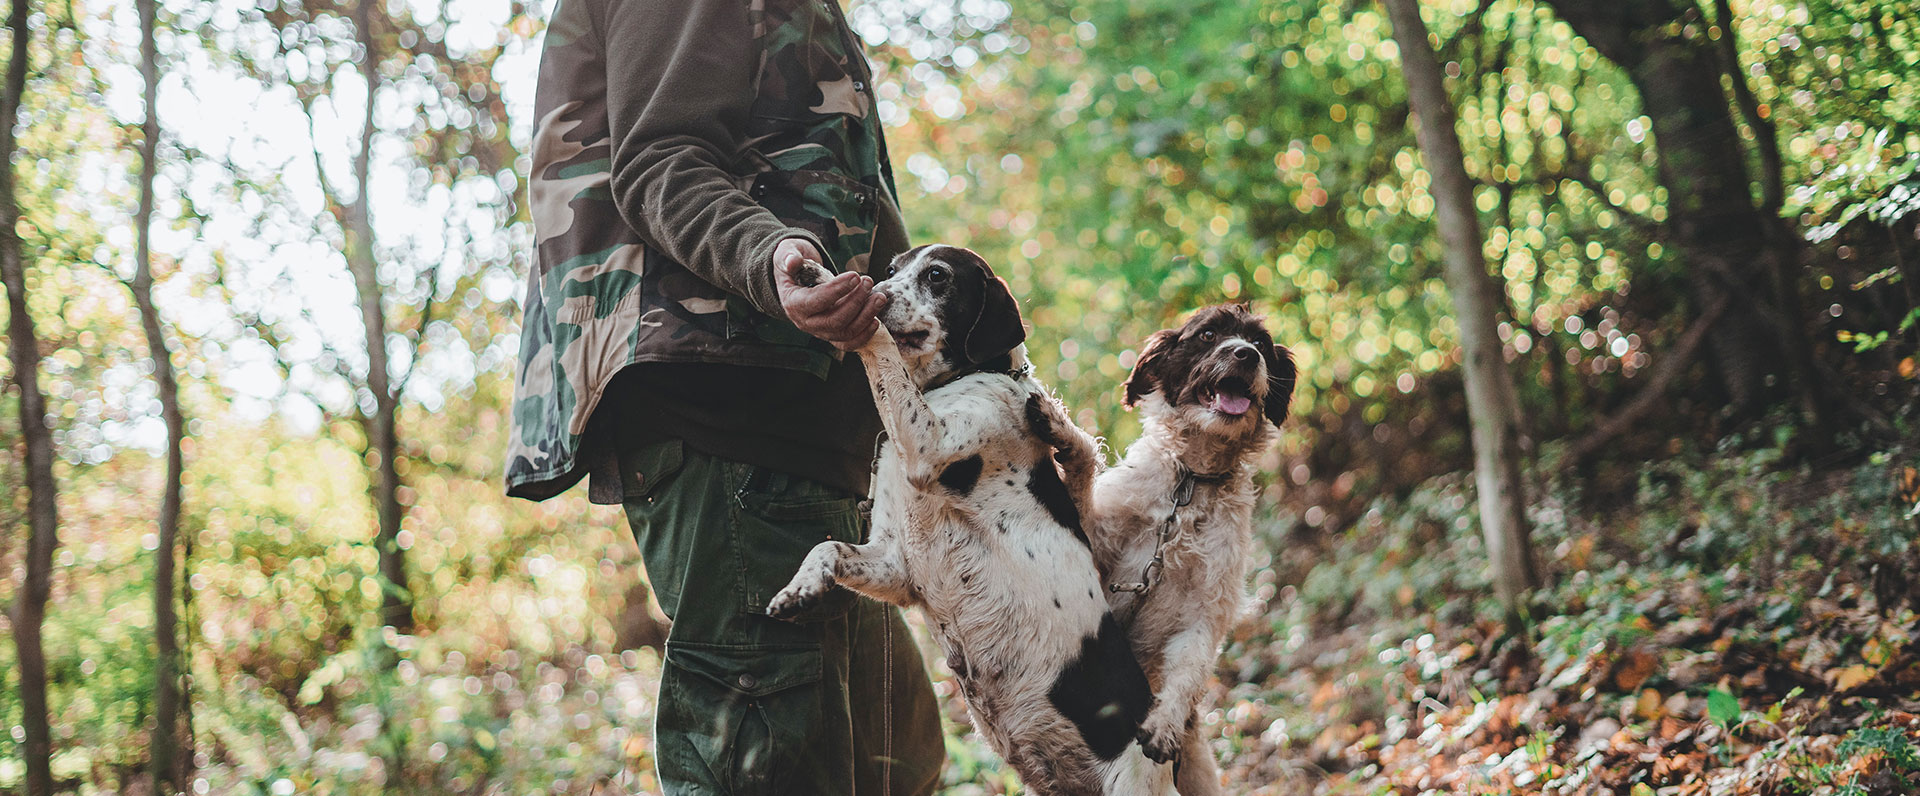 truffle hunt and walk in the wood